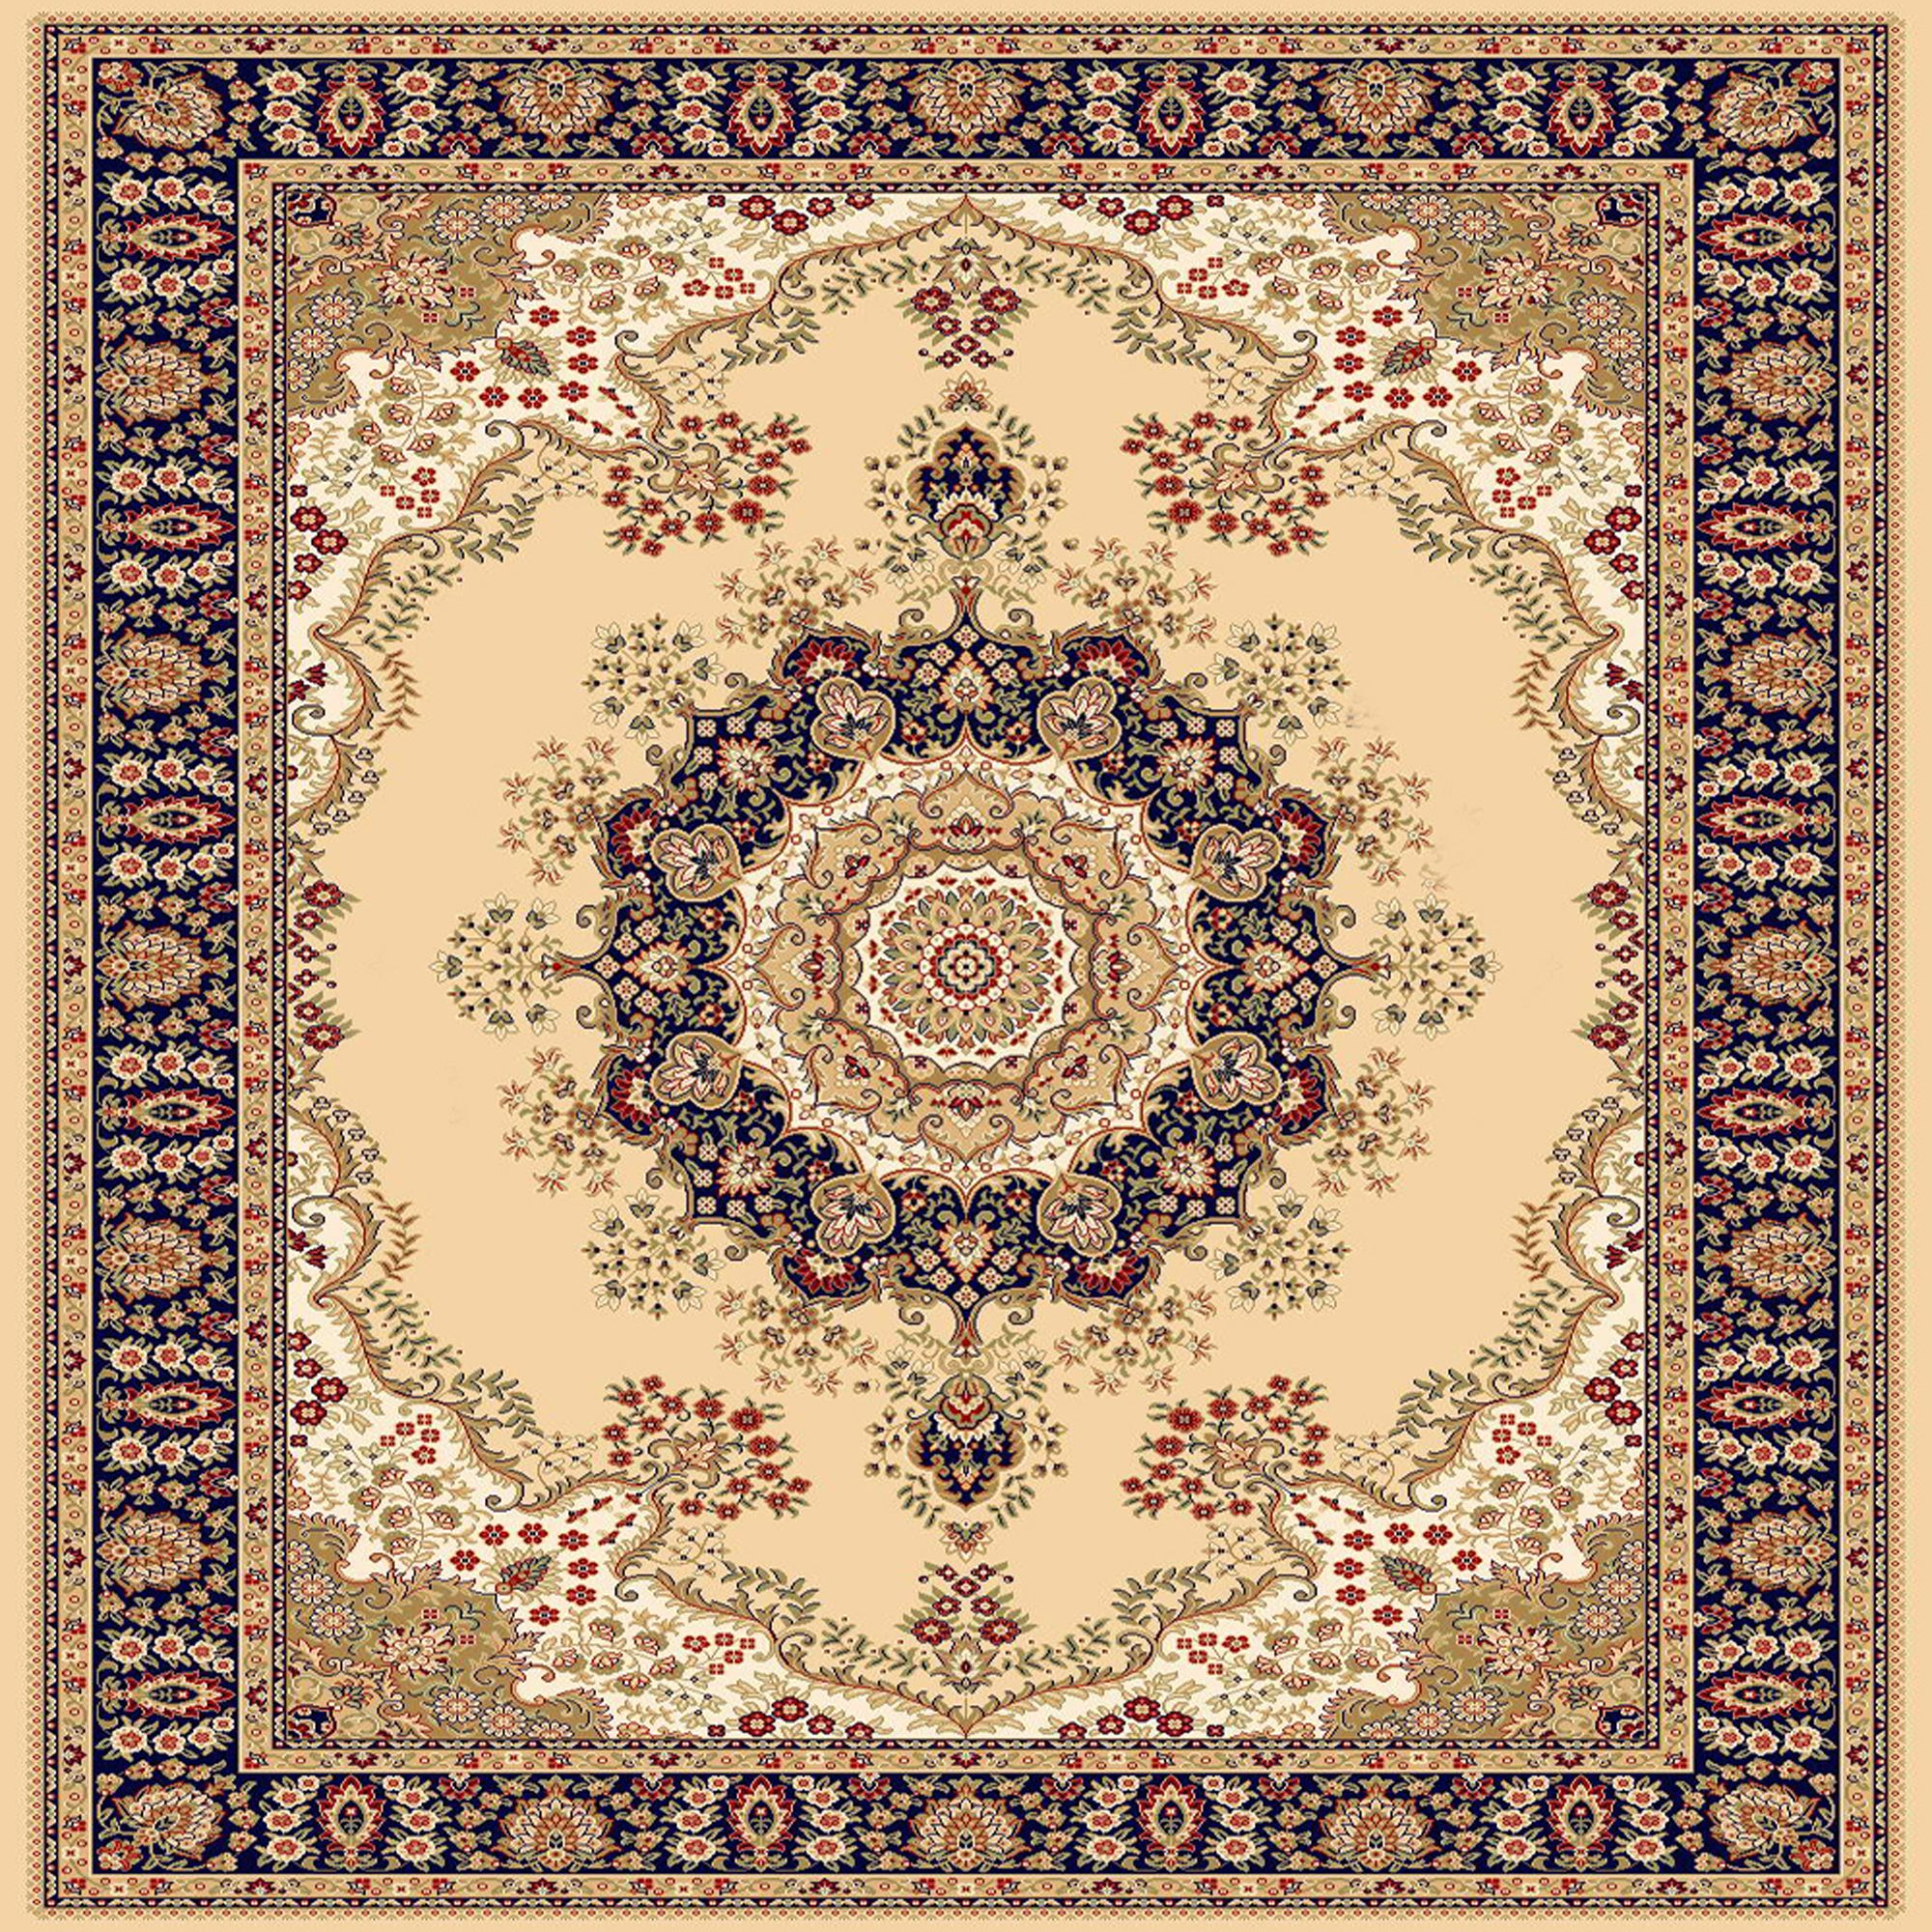 Beige Square Persian Design Area Rug 7ft Square Area Rug Design Rugs Area Rugs